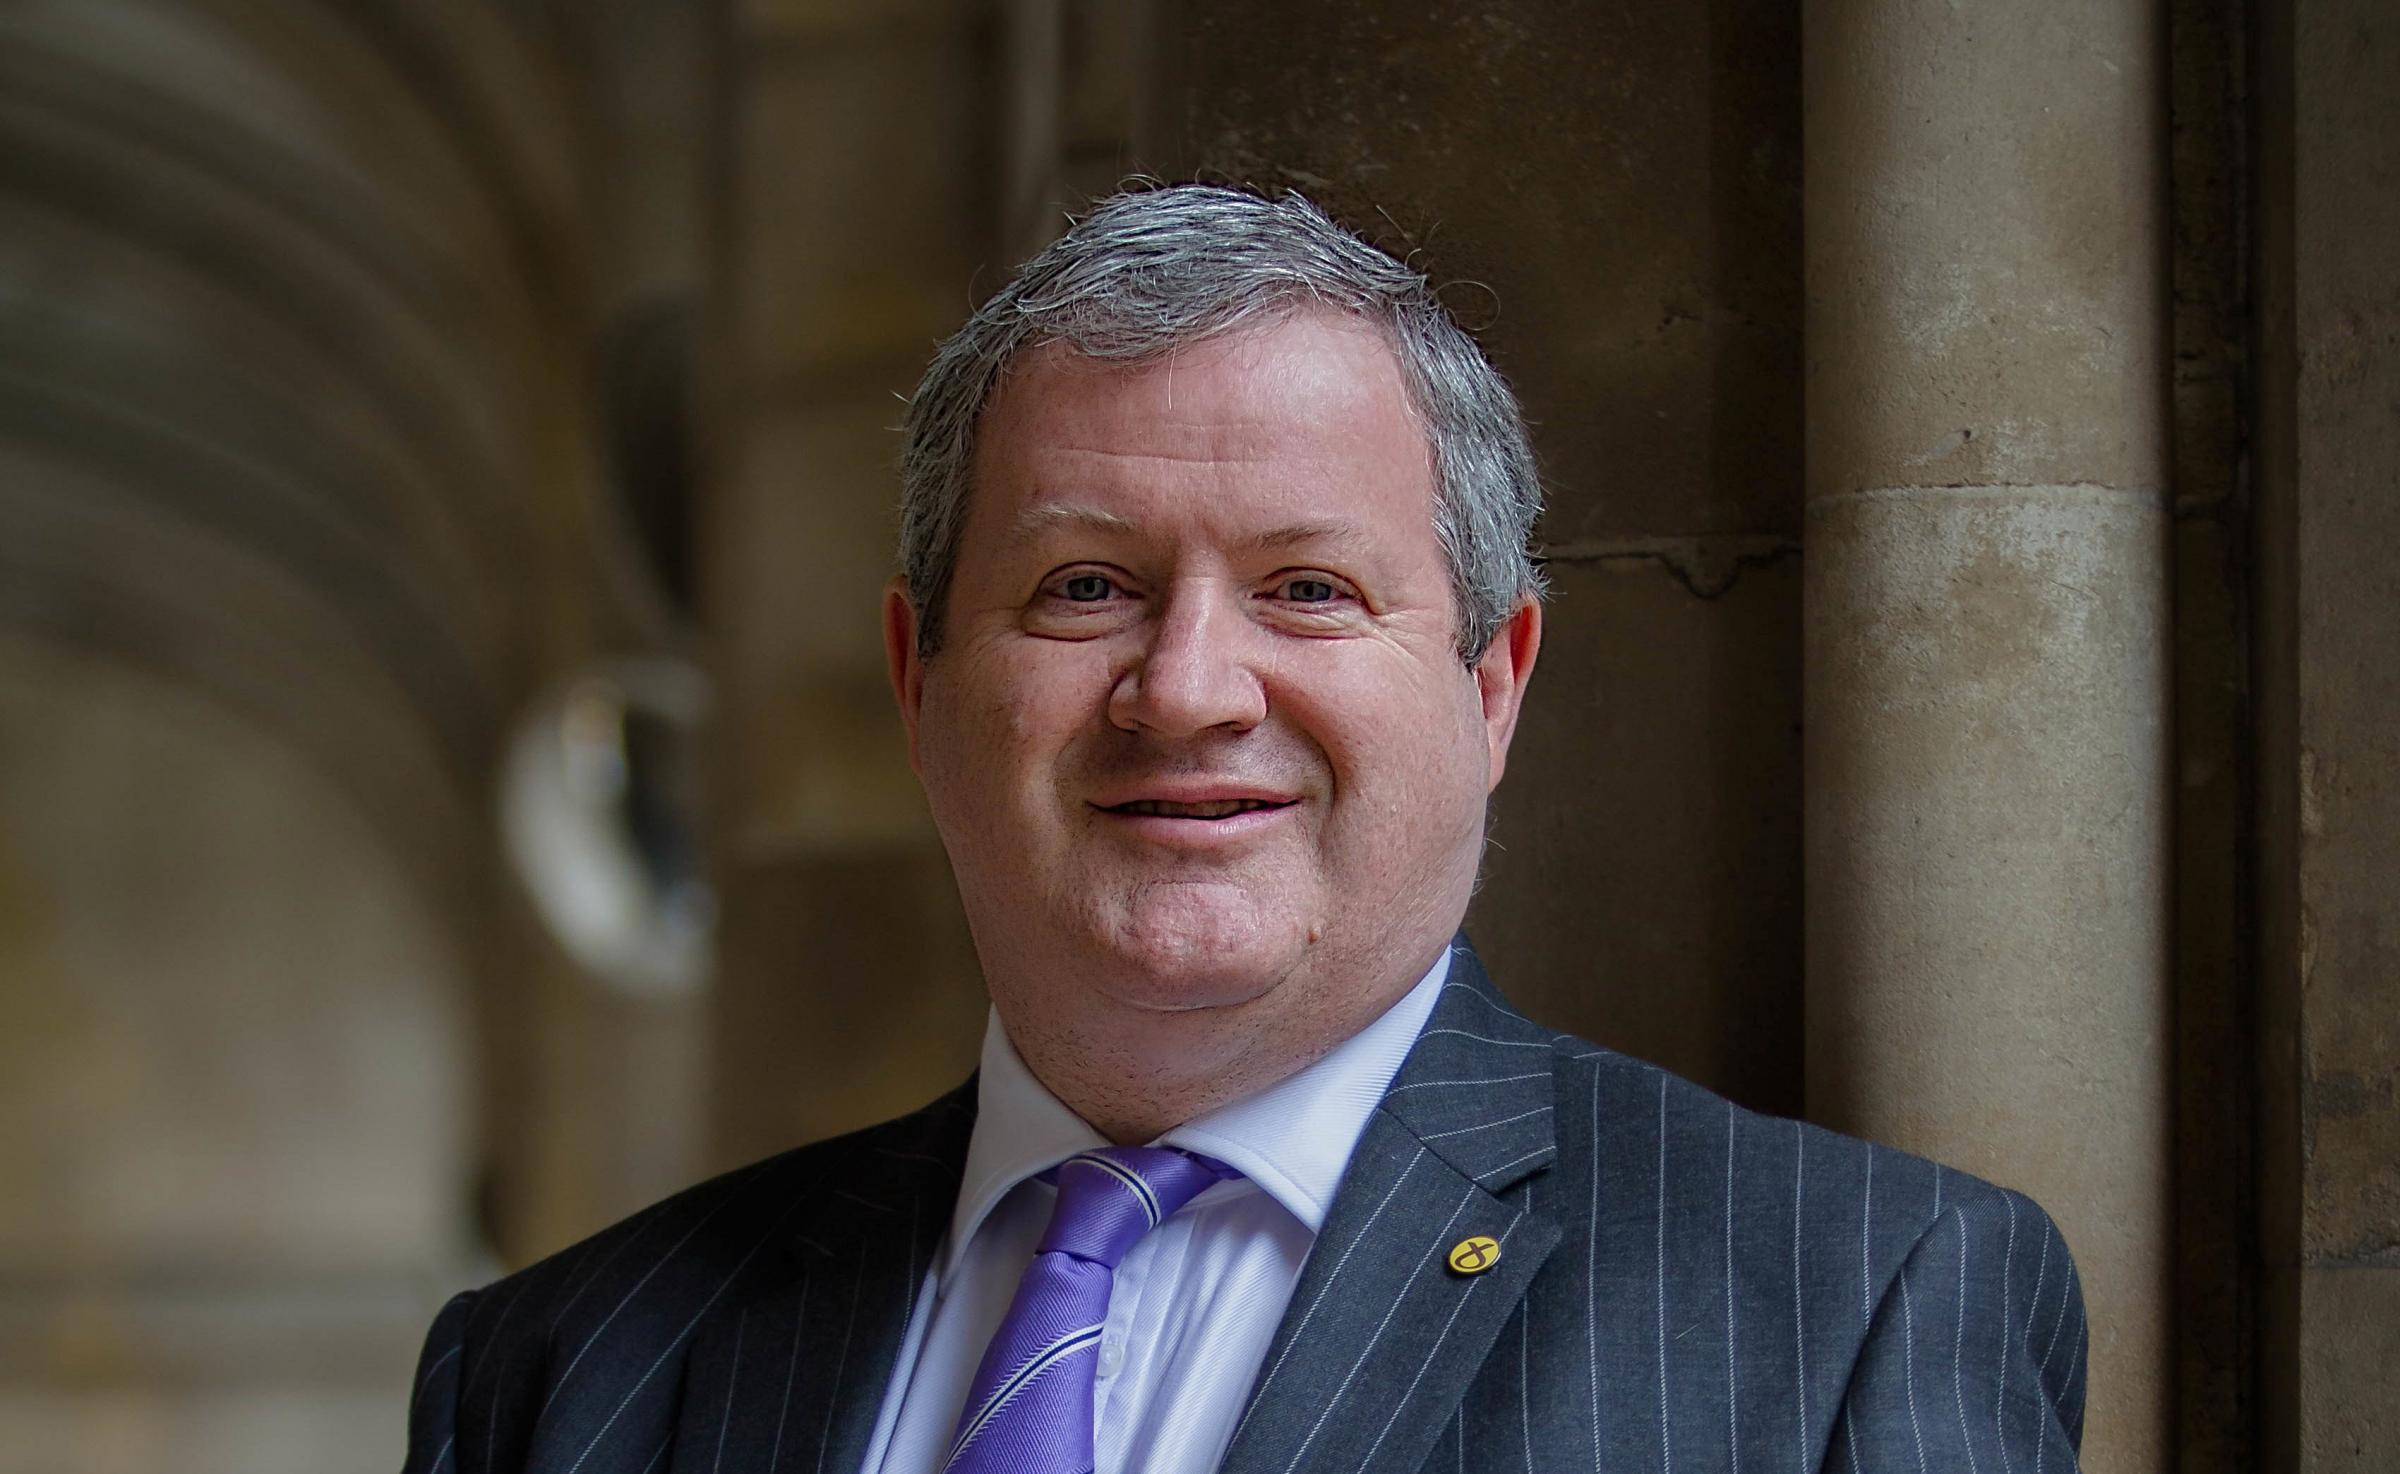 The SNP's Ian Blackford has been criticised